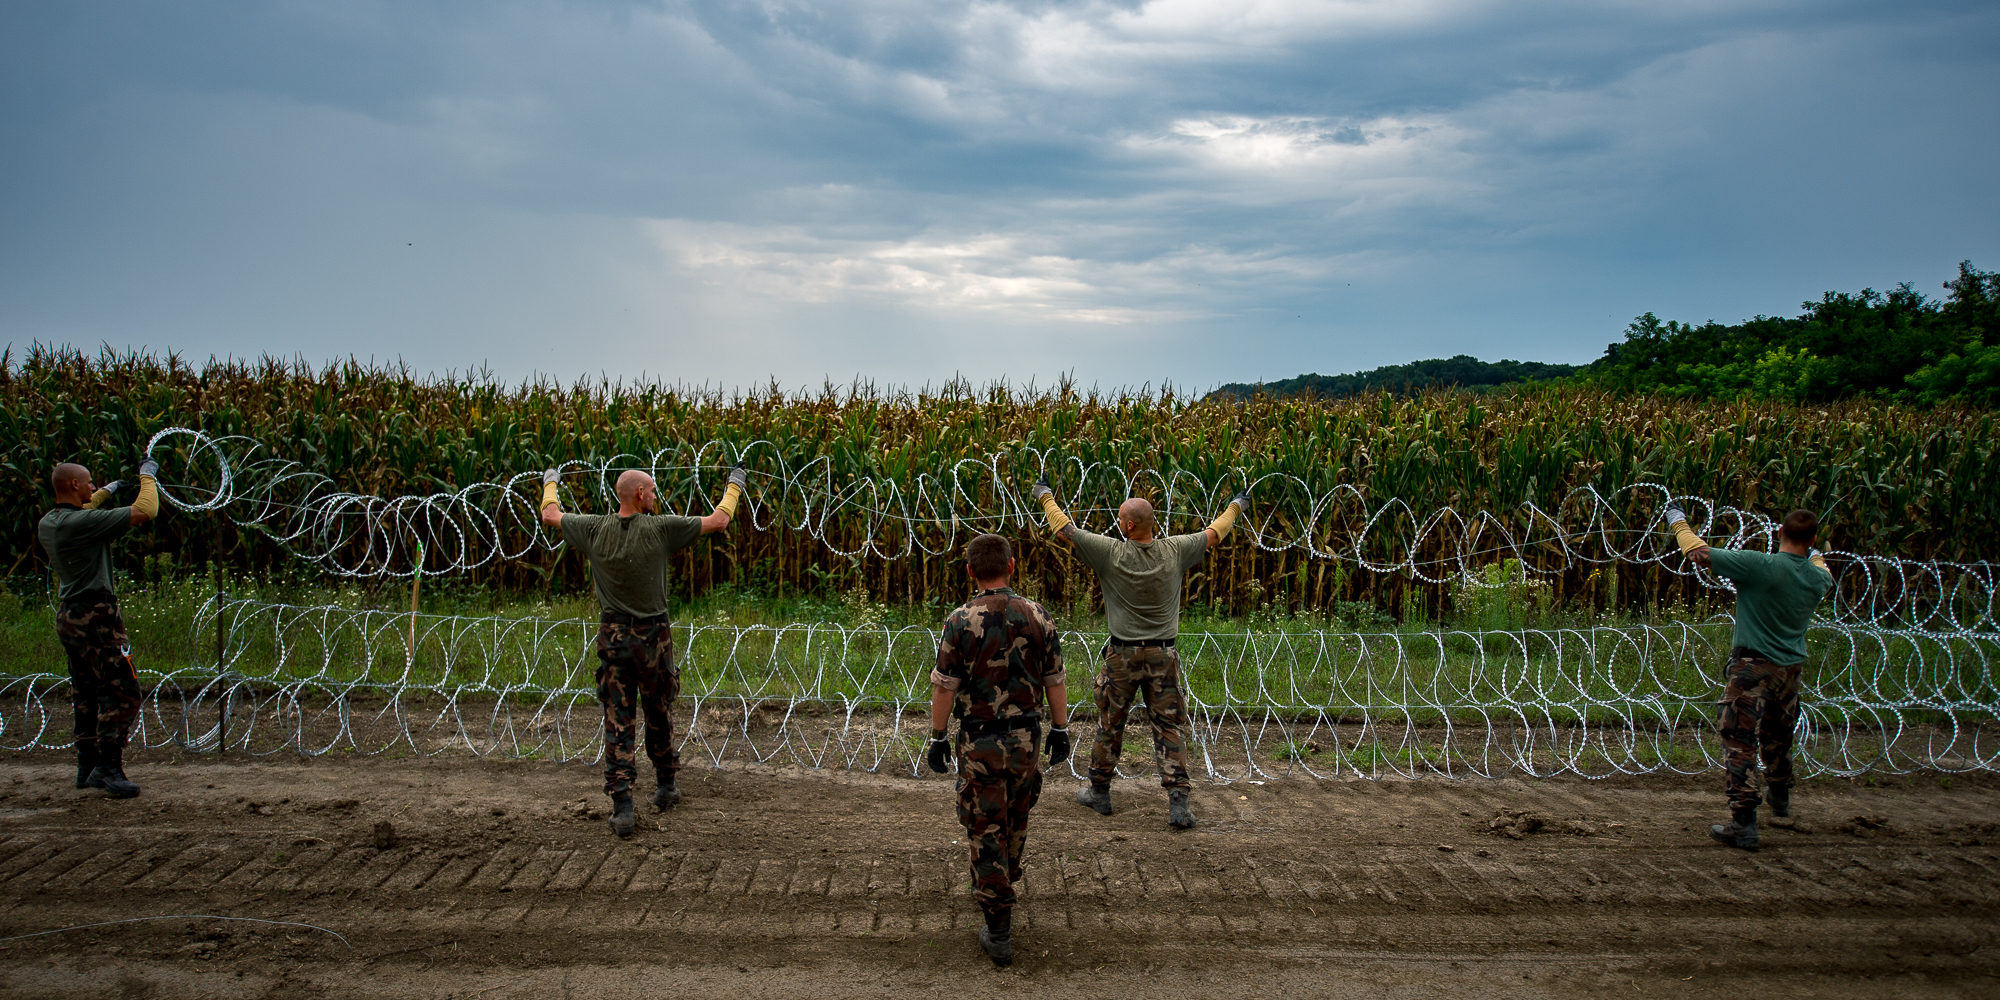 Hungarian soldiers are building razor barbed wire as they construct a 175 kms long temporary fence on Hungary's southern border with Serbia destined to halt illegal immigration into the country near Hercegszántó.